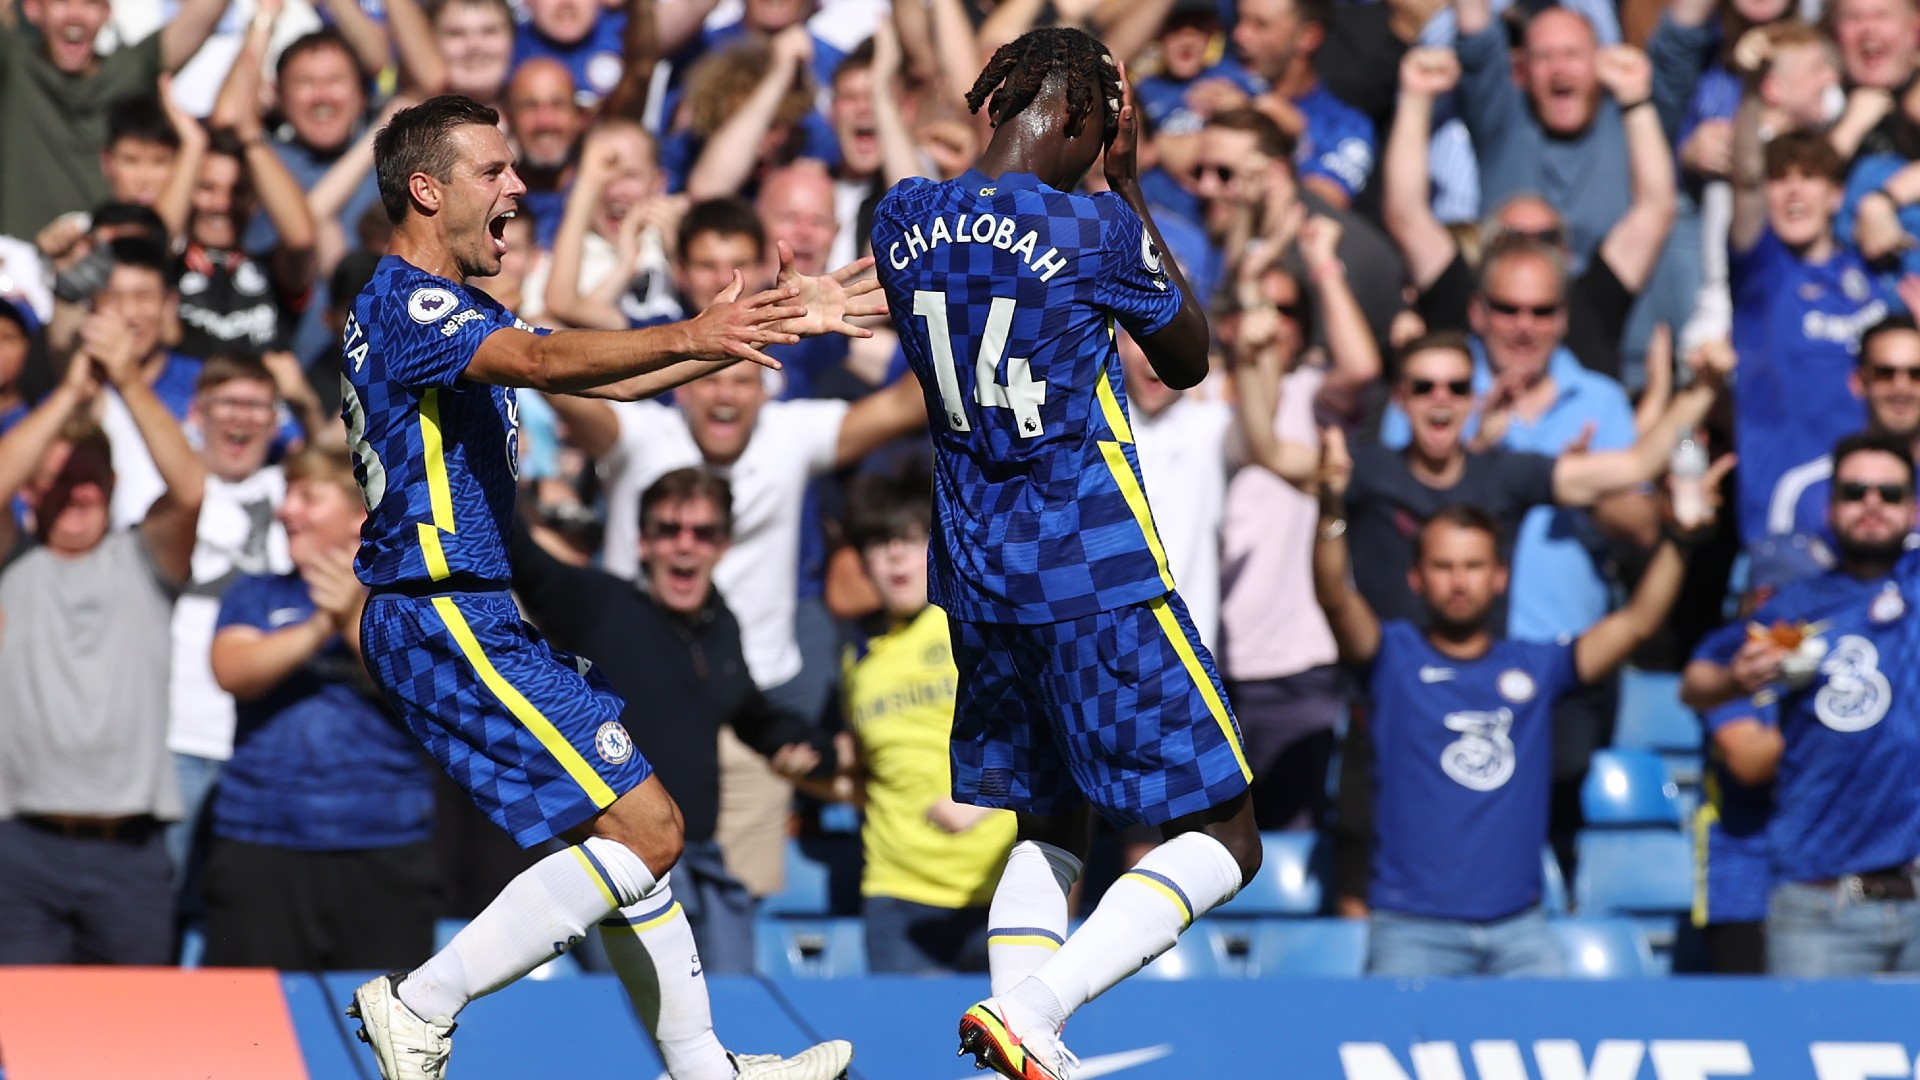 'It's a dream' – Chelsea's Chalobah elated after marking Premier League debut with goal